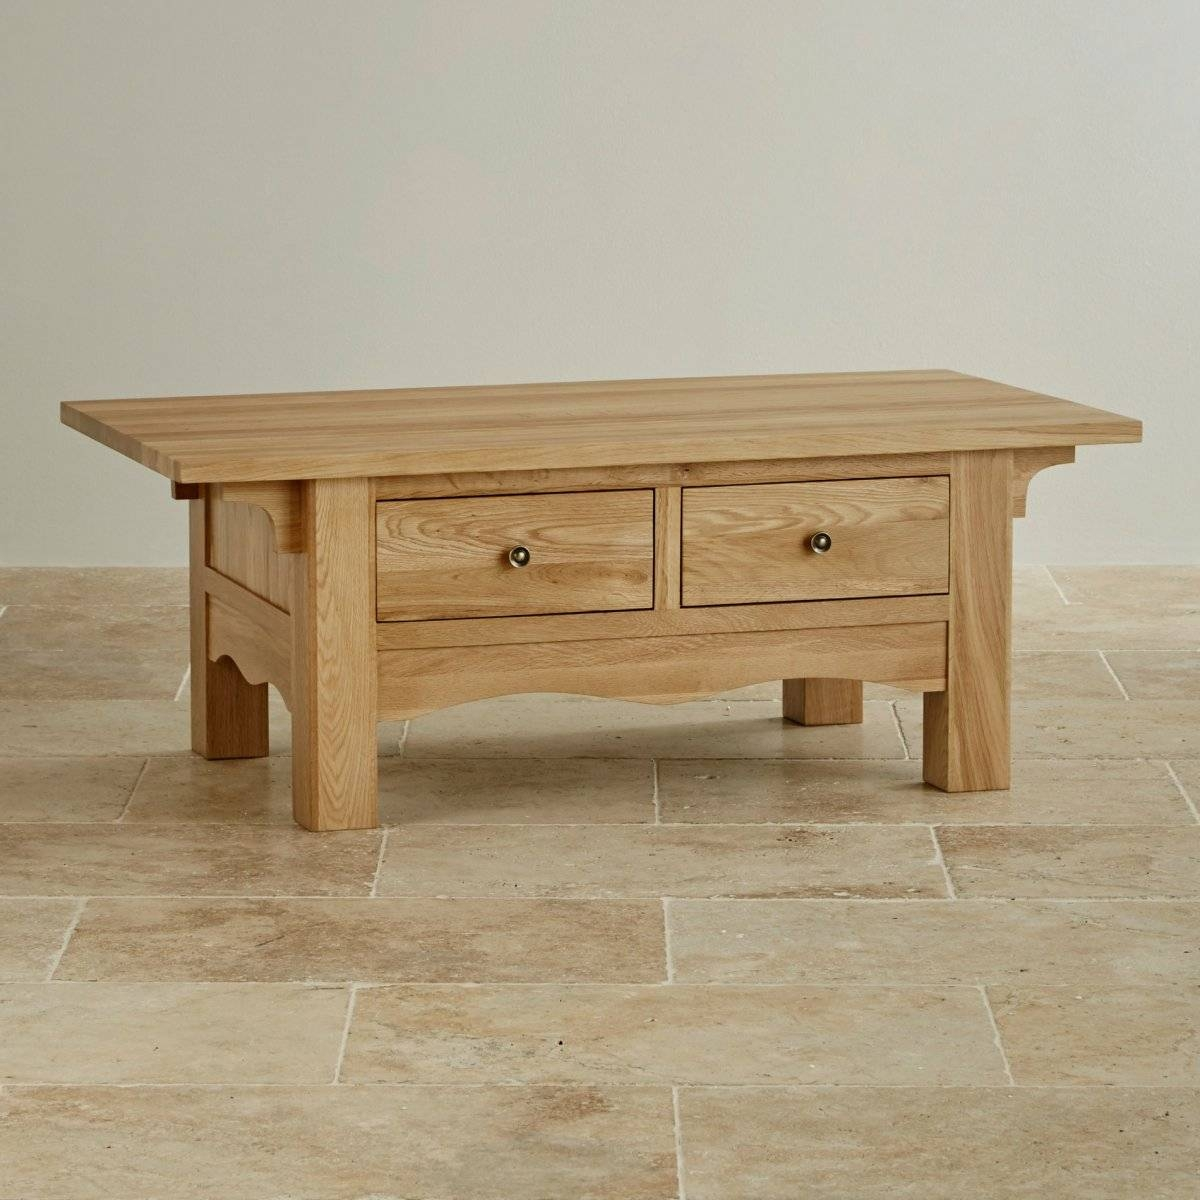 Cairo Natural Solid Oak Coffee Table intended for Solid Oak Coffee Tables (Image 4 of 15)